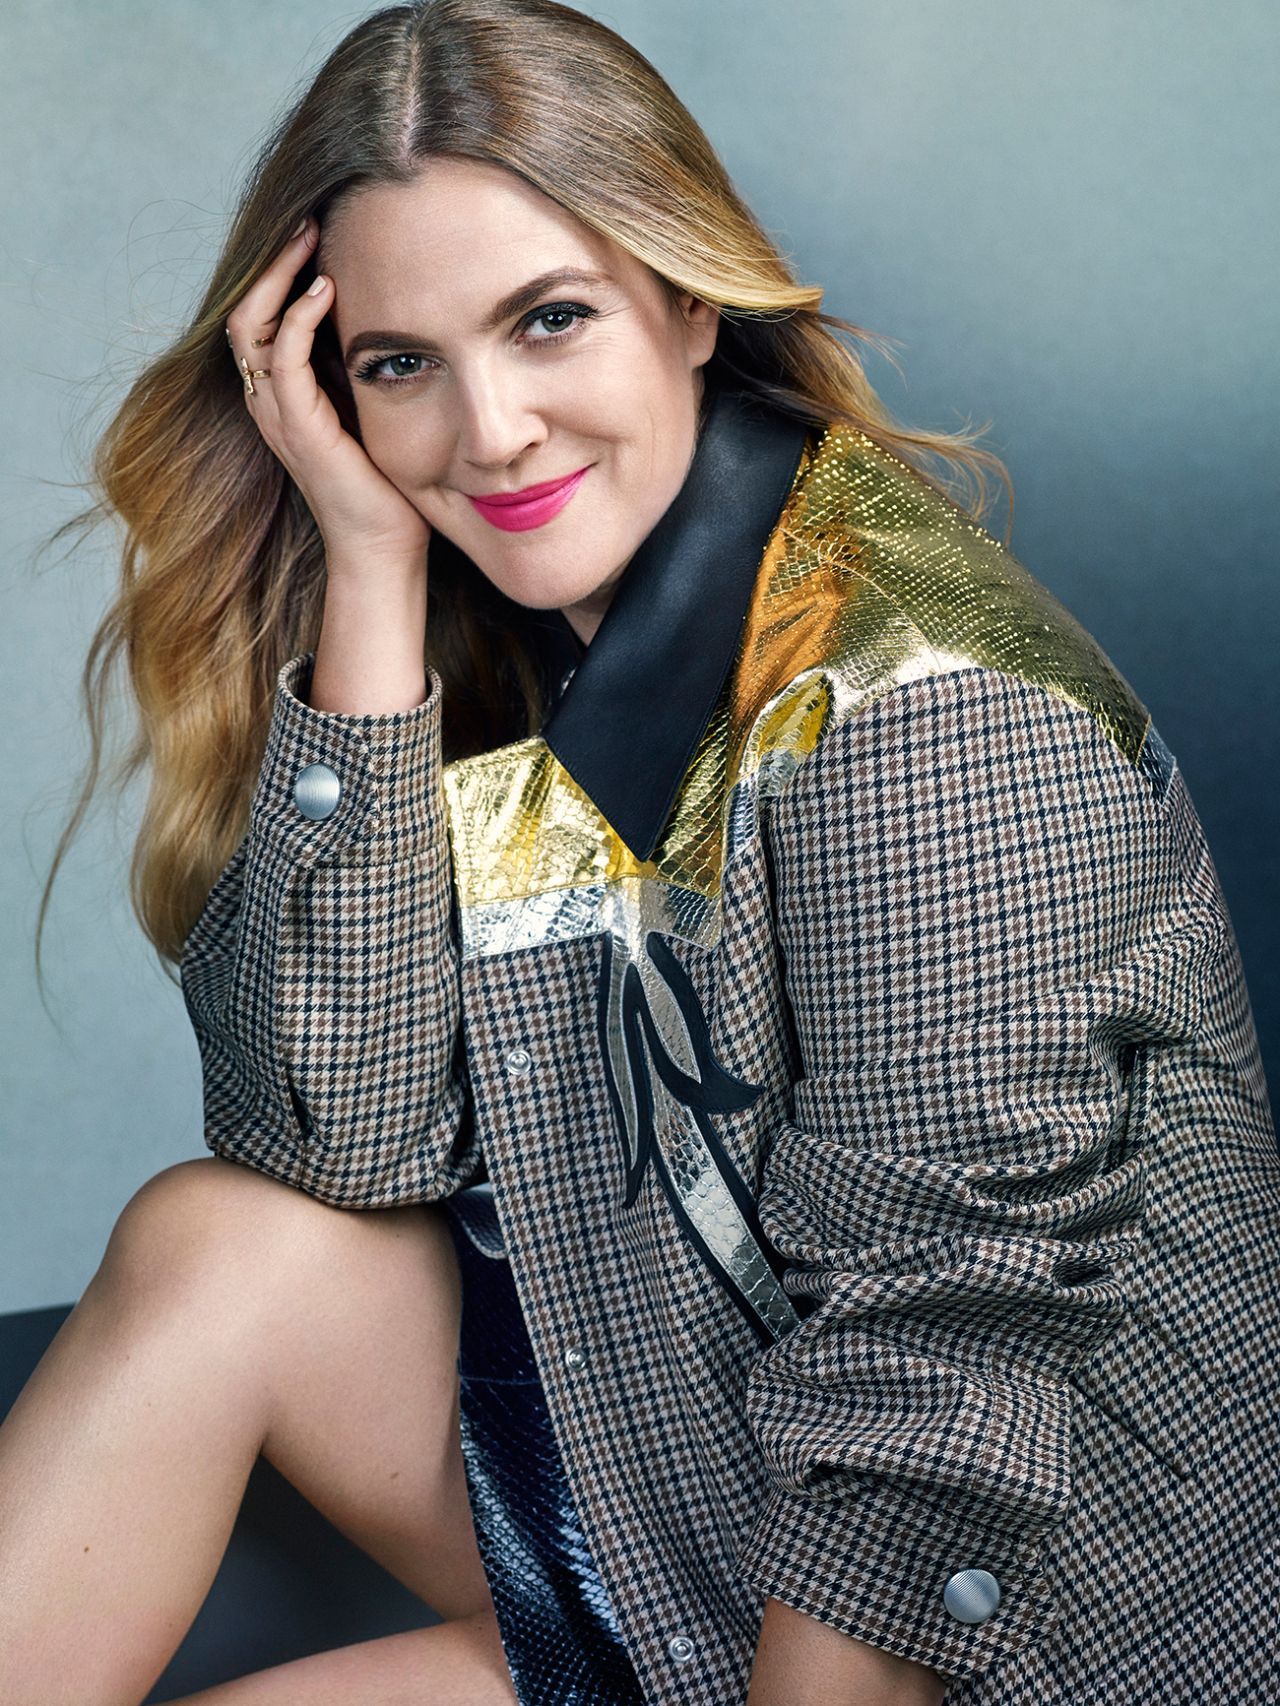 Drew Barrymore Photoshoot For Marie Claire Magazine